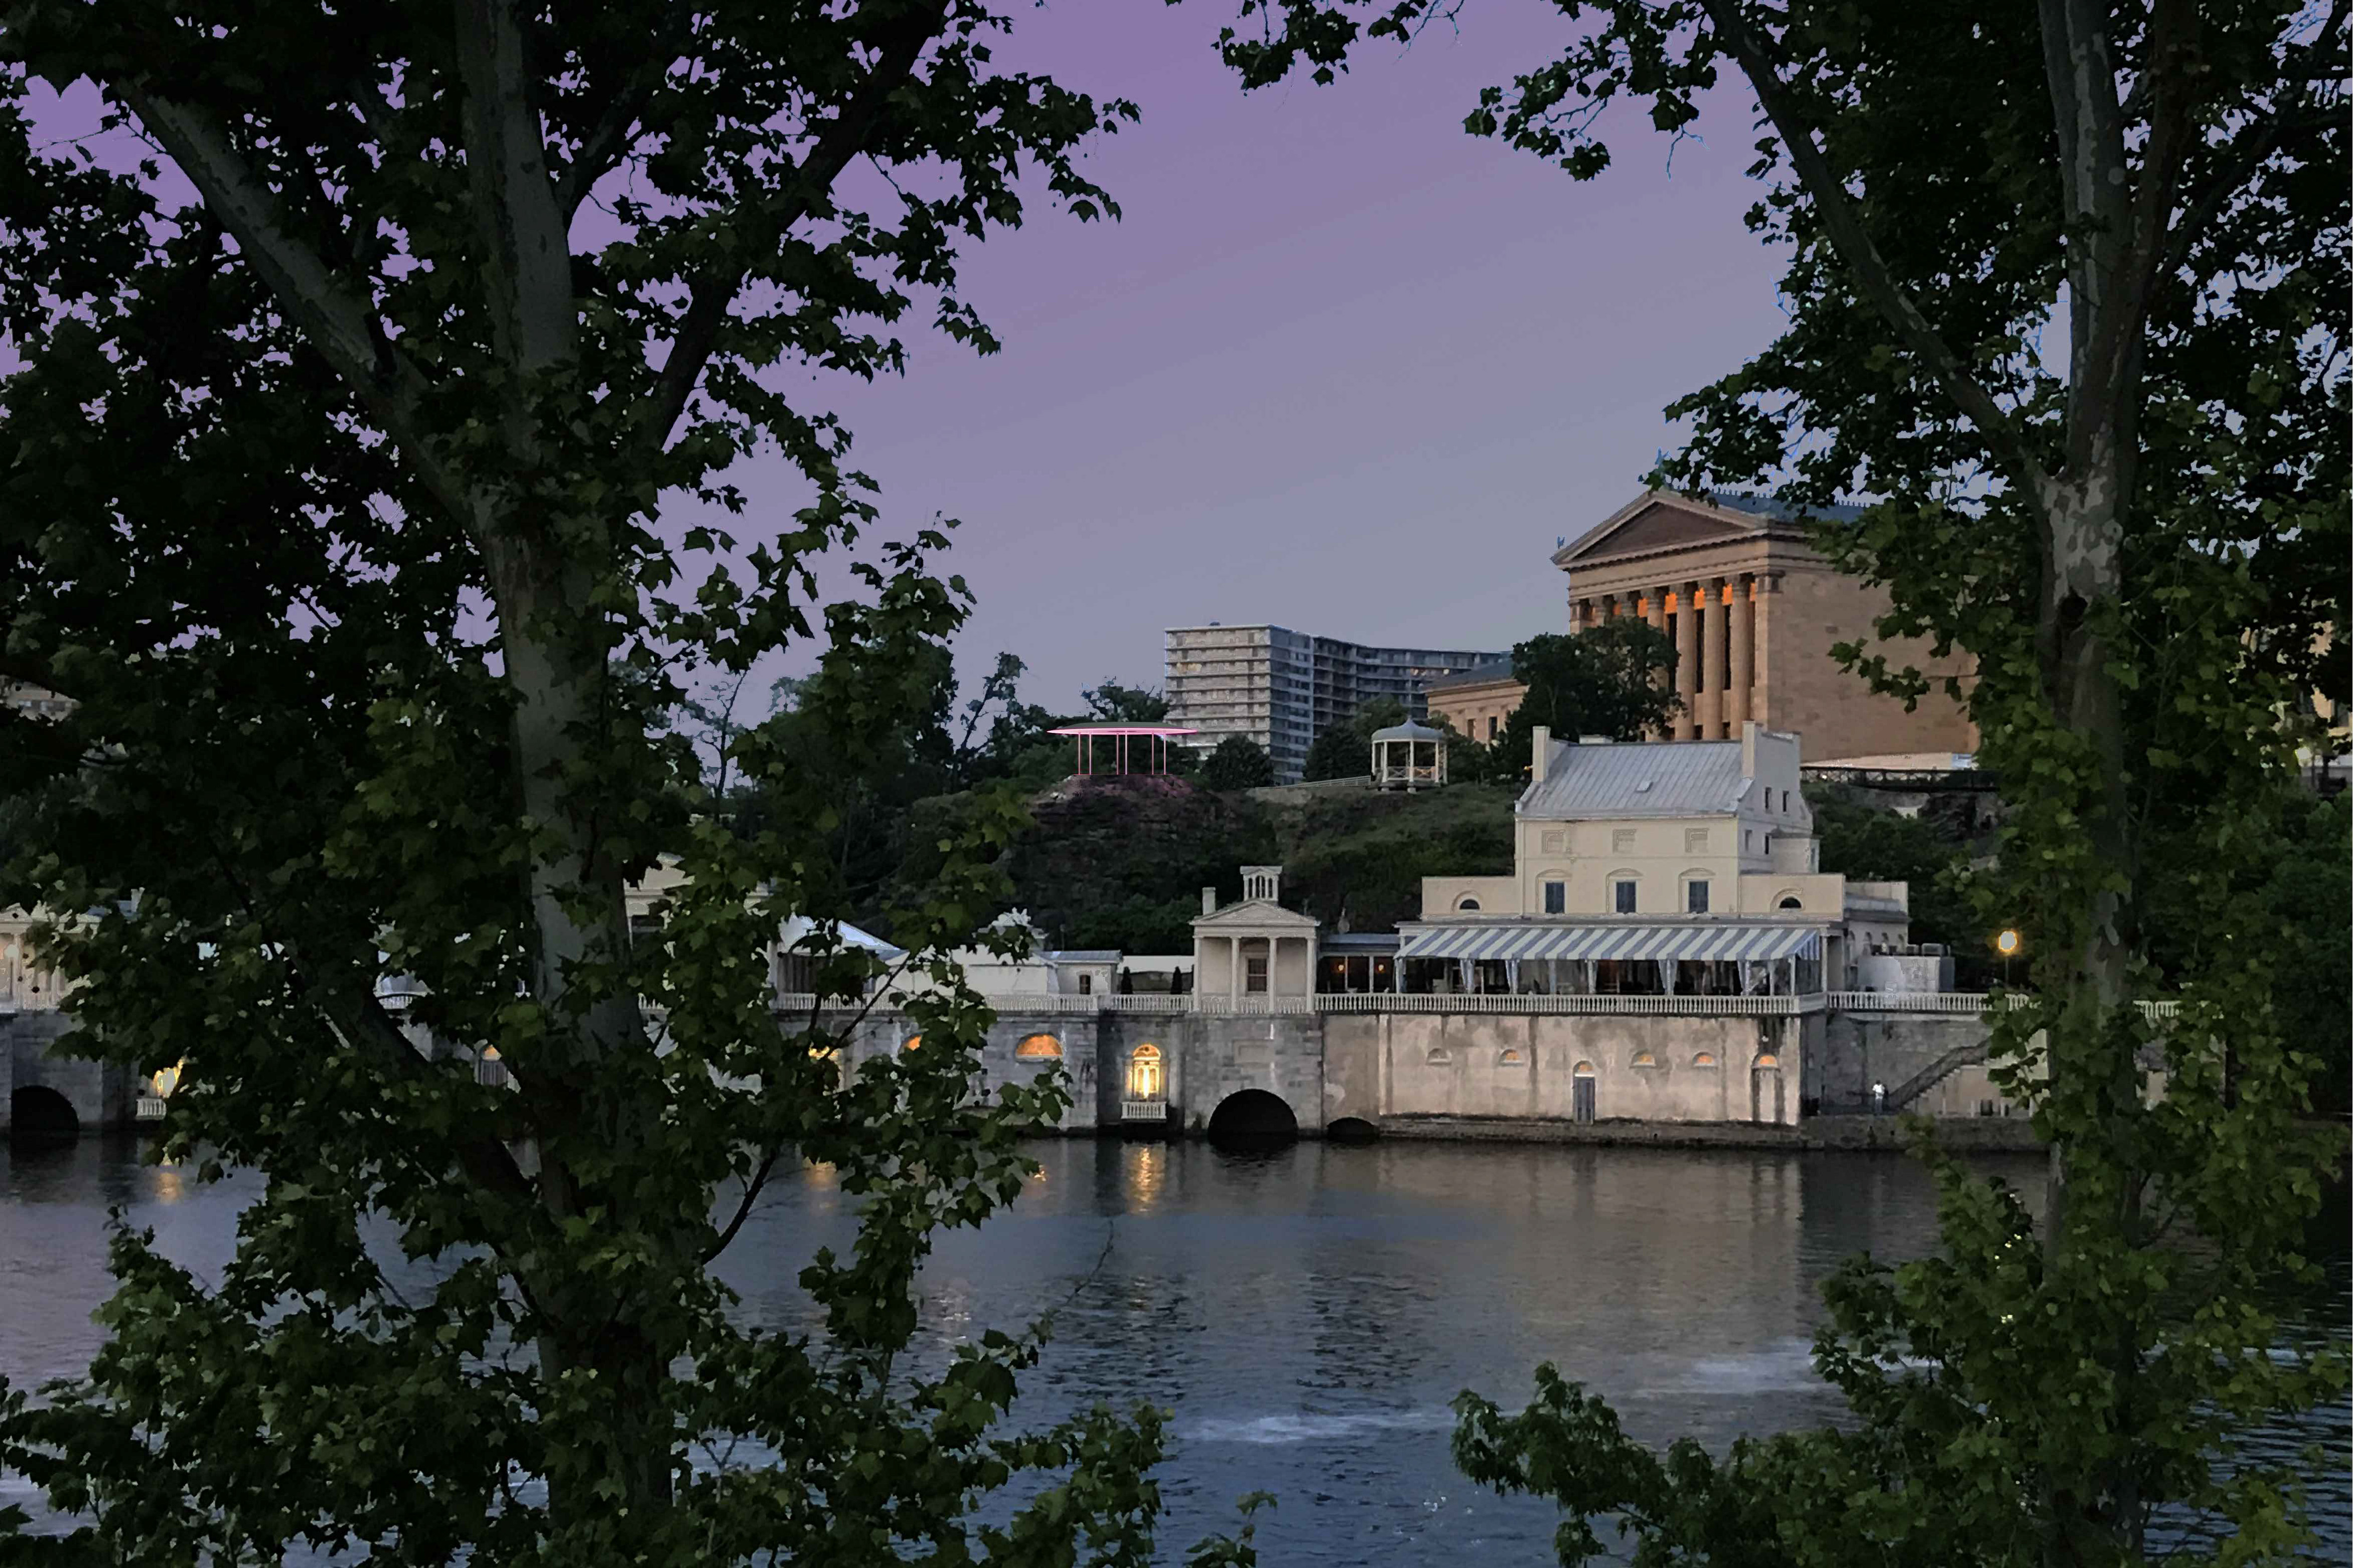 This photo illustration provided by KSK Architects shows the proposed placement of the proposed James Turrell Skyspace on the rocky outcrop next to the Philadelphia Museum of Art.